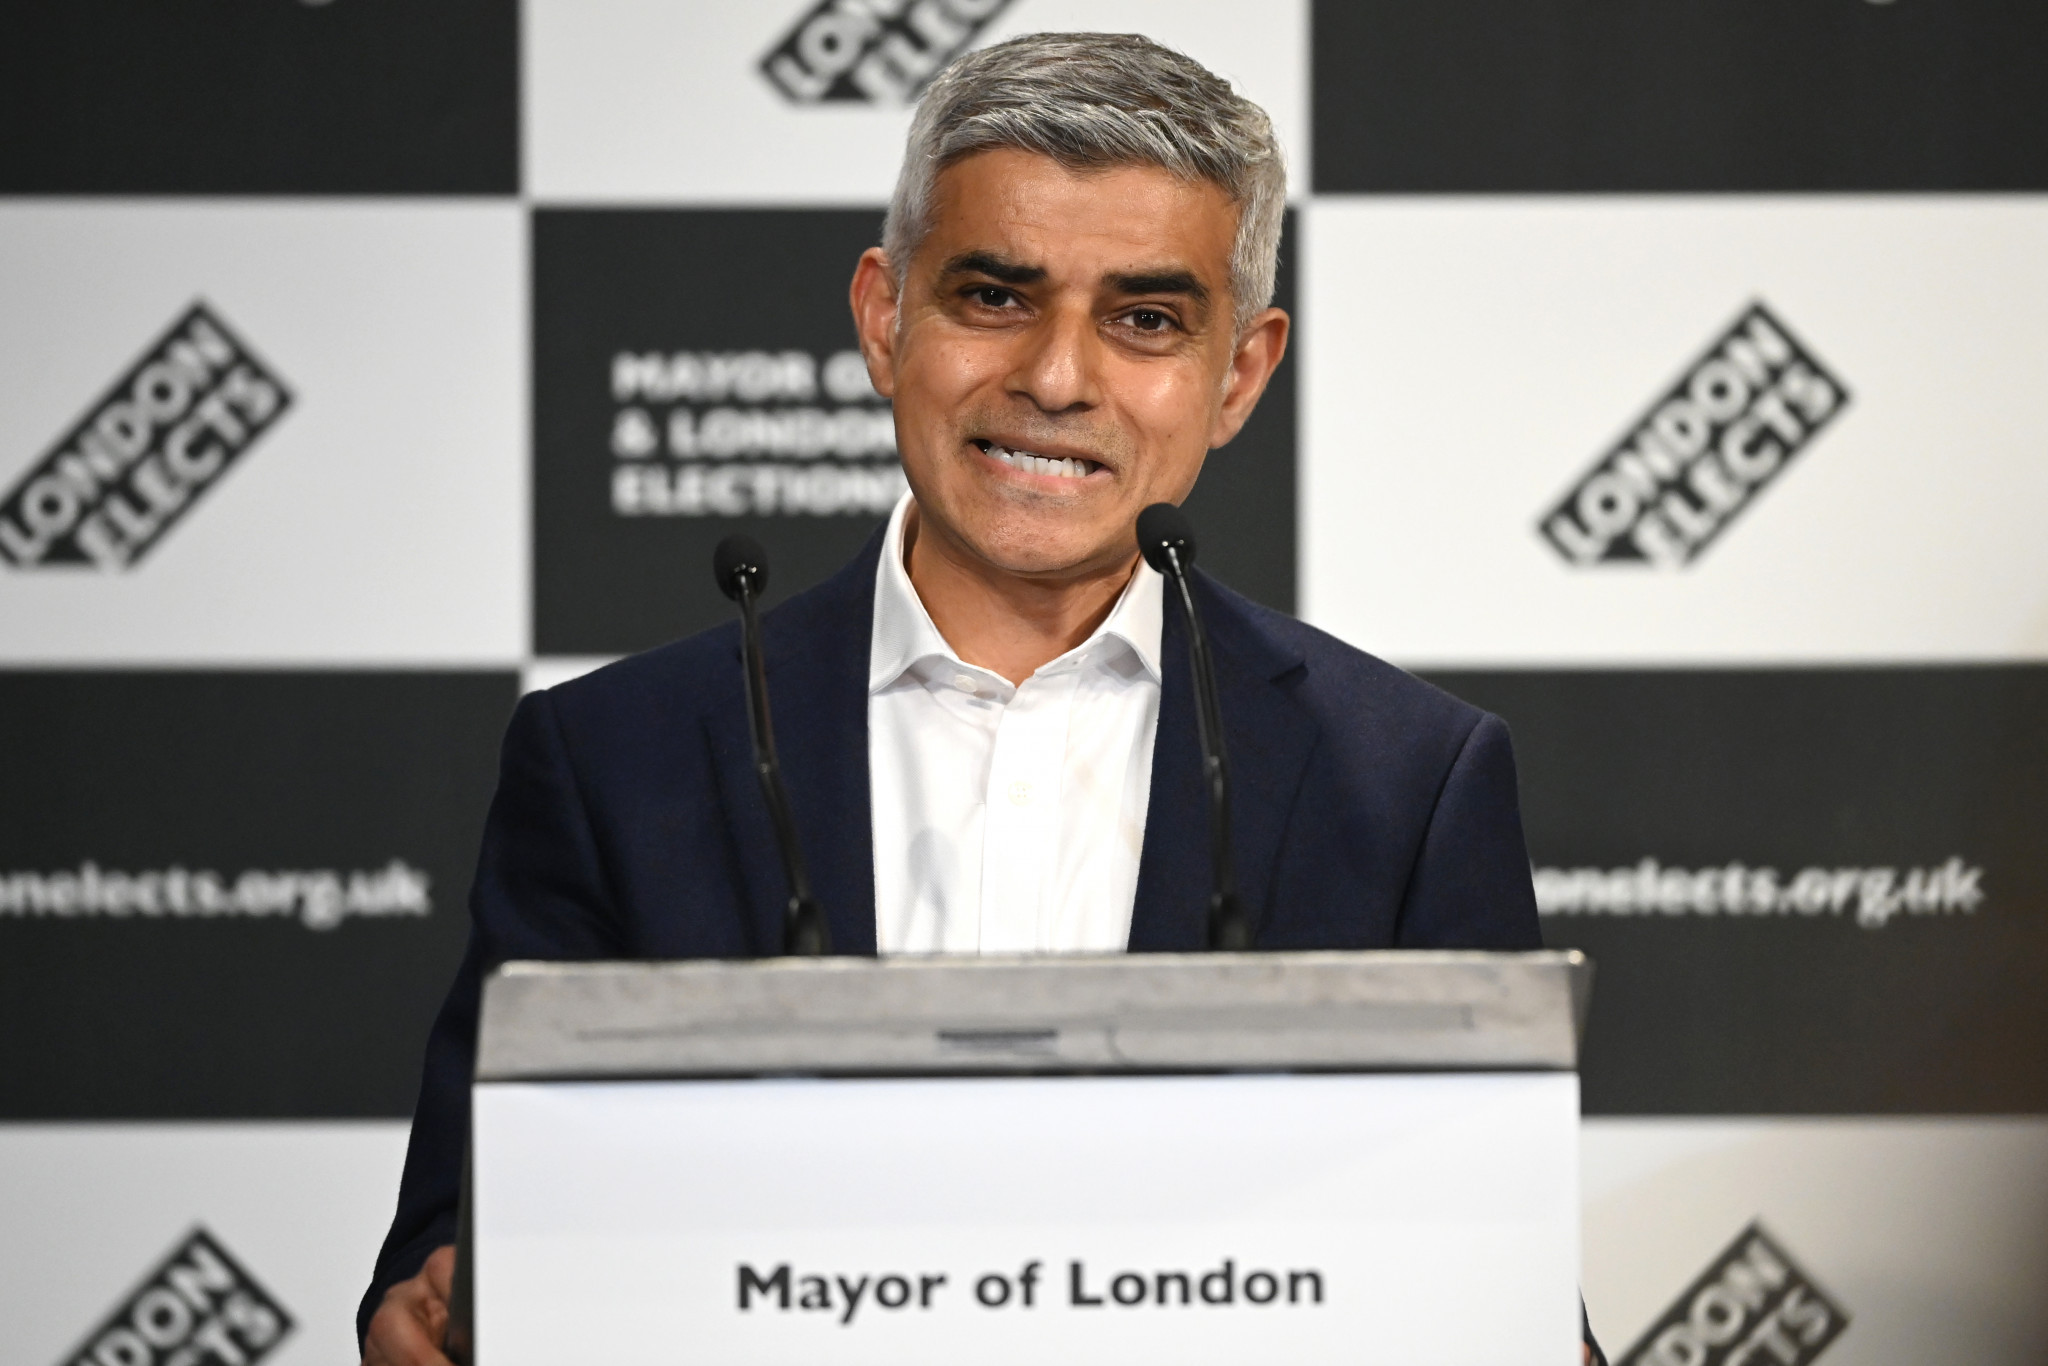 Sadiq Khan pledged to explore a future Olympic and Paralympic bid during his London Mayoral election campaign ©Getty Images